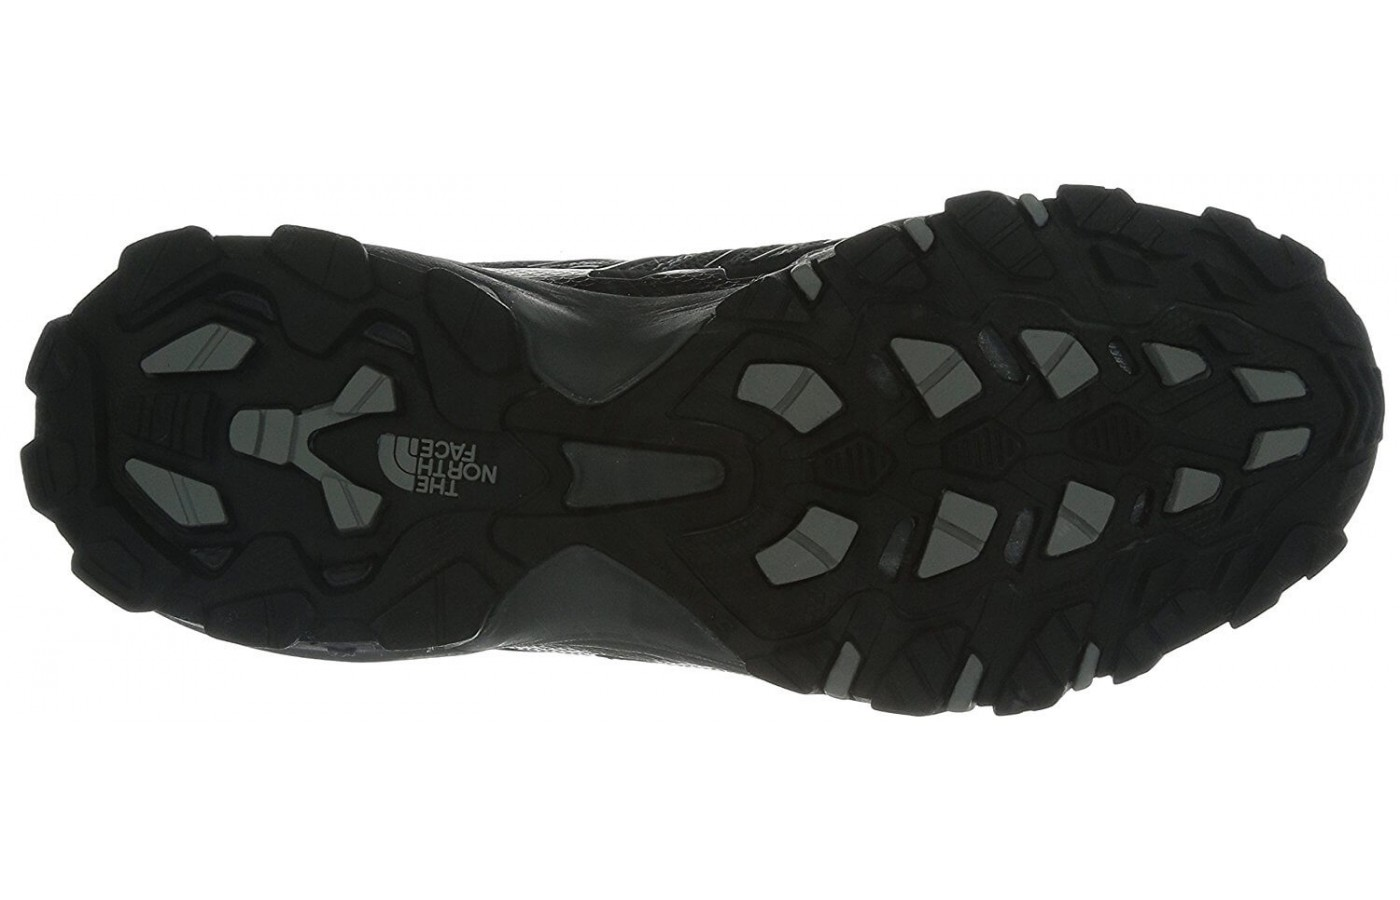 The The North Face Ultra 110 GTX has an UltrATAC outsole